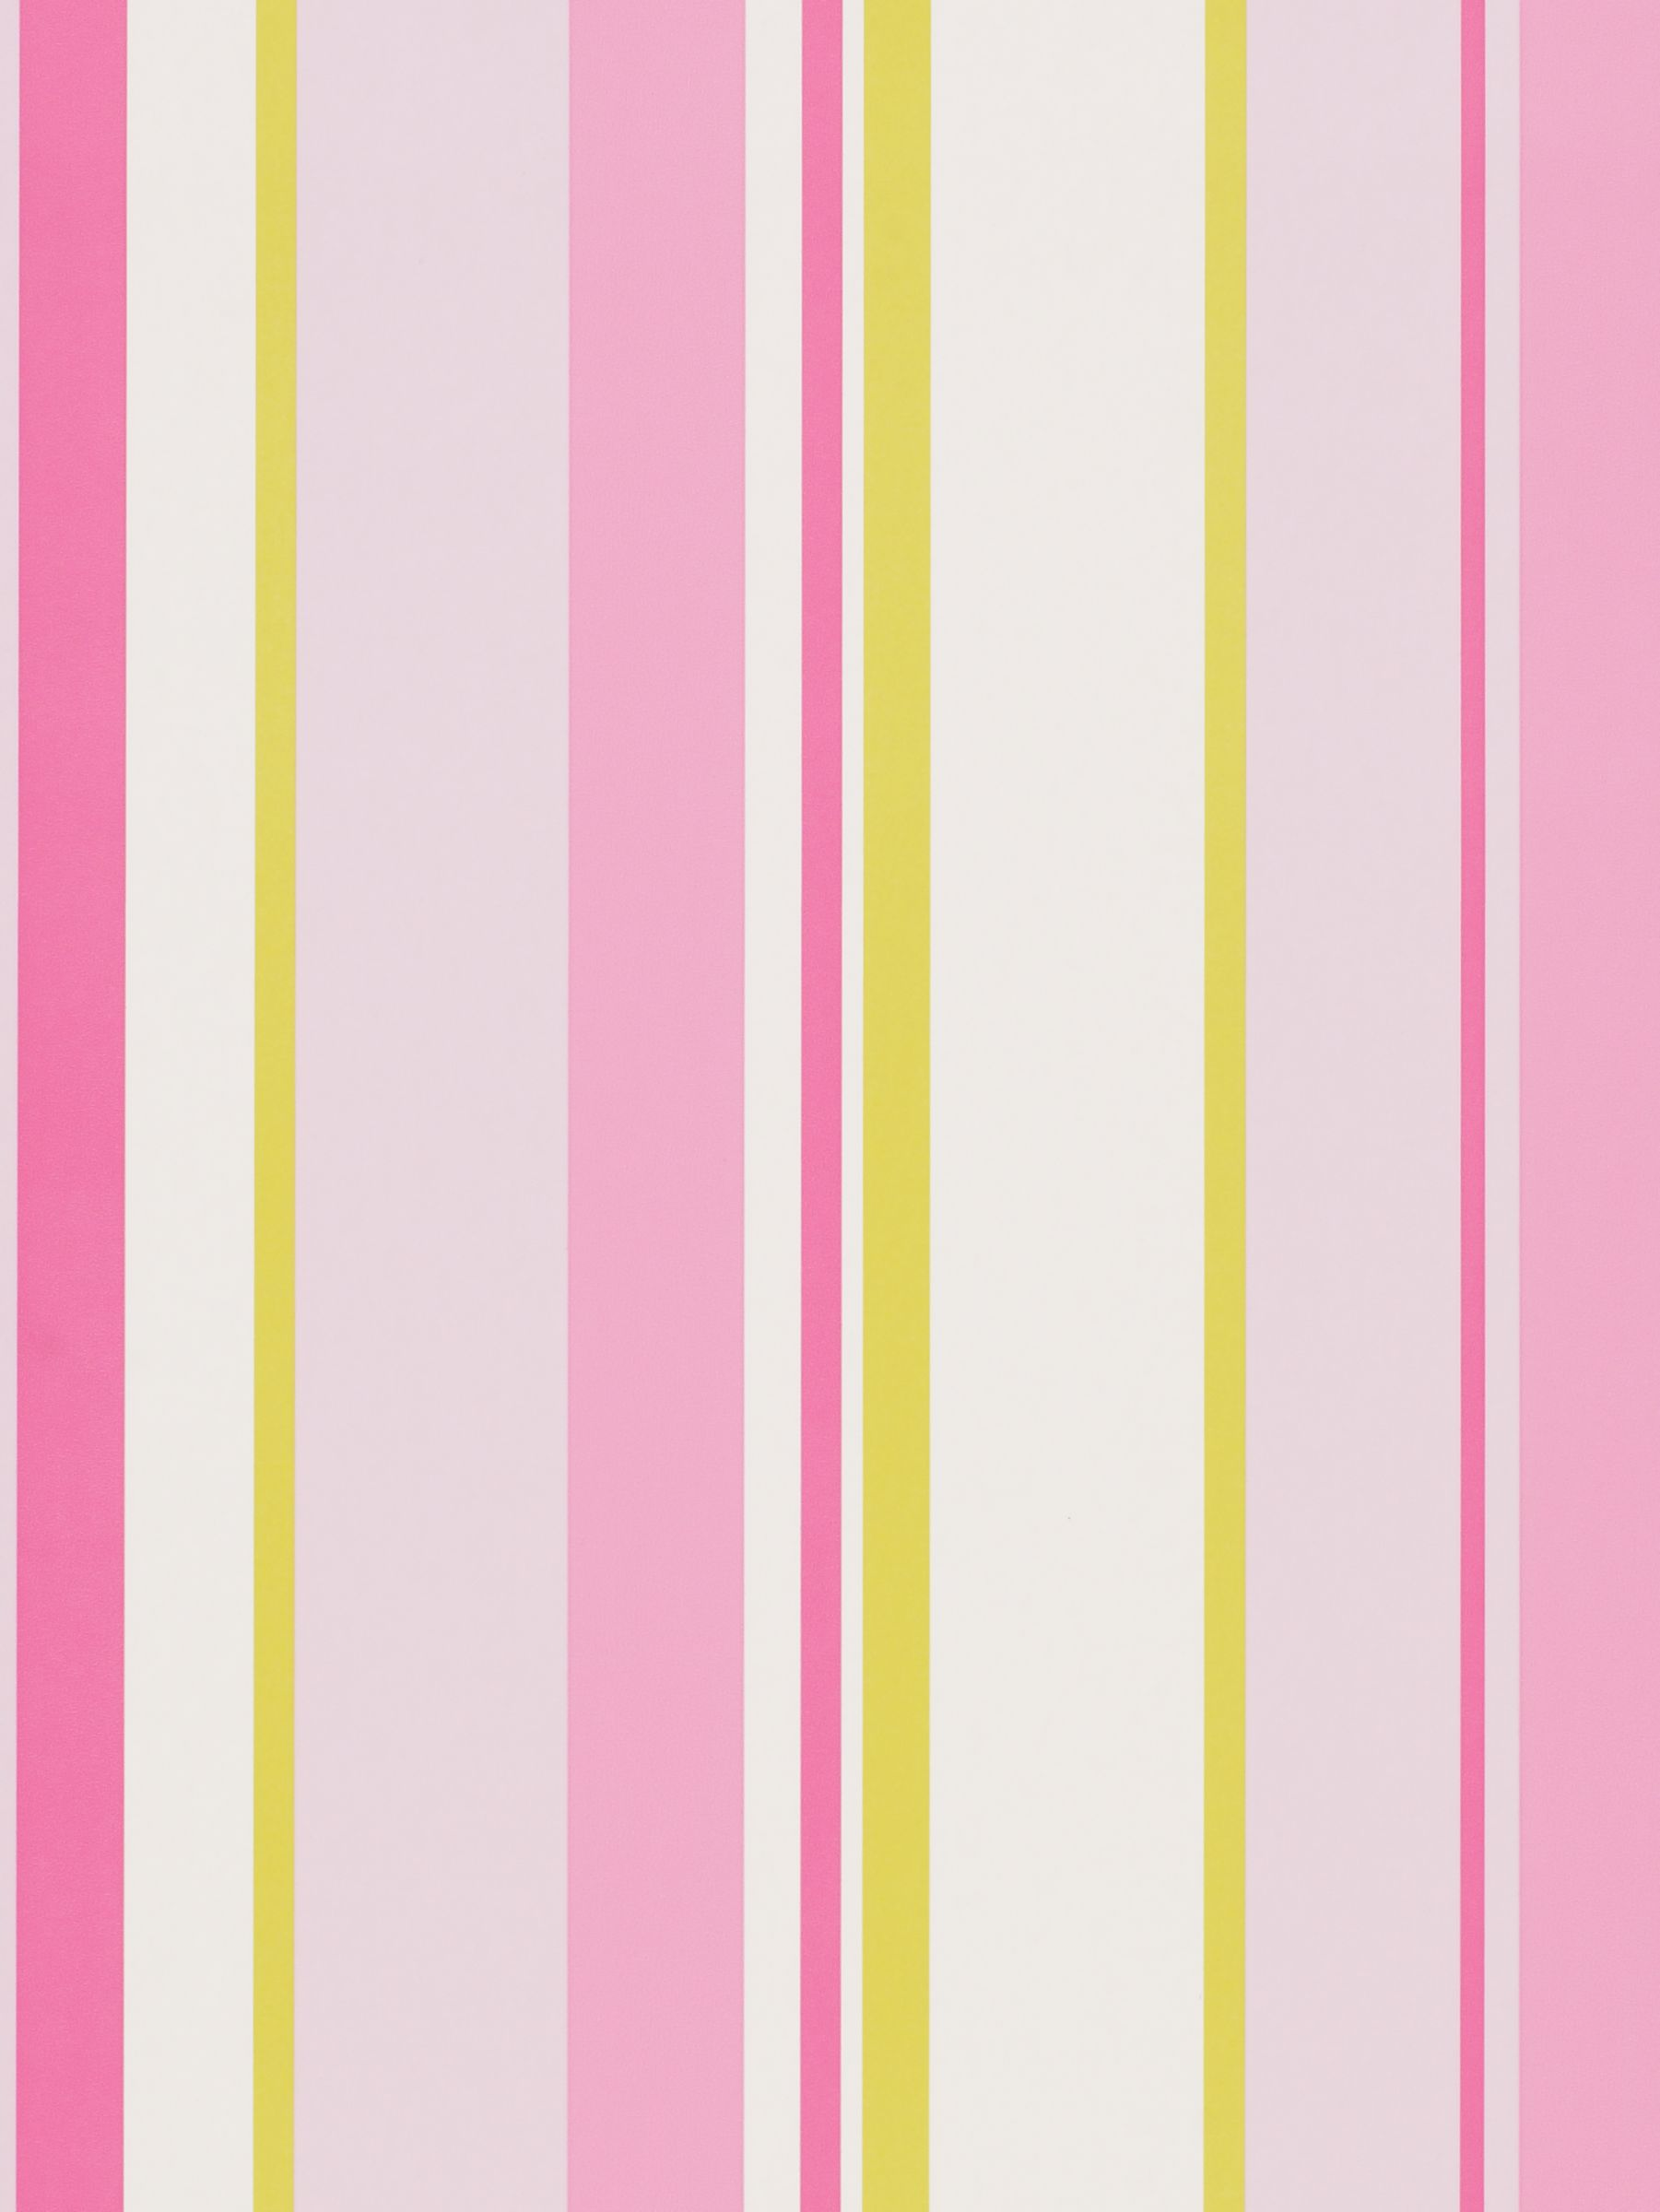 stripe wallpaper. £16.00, View Product. little